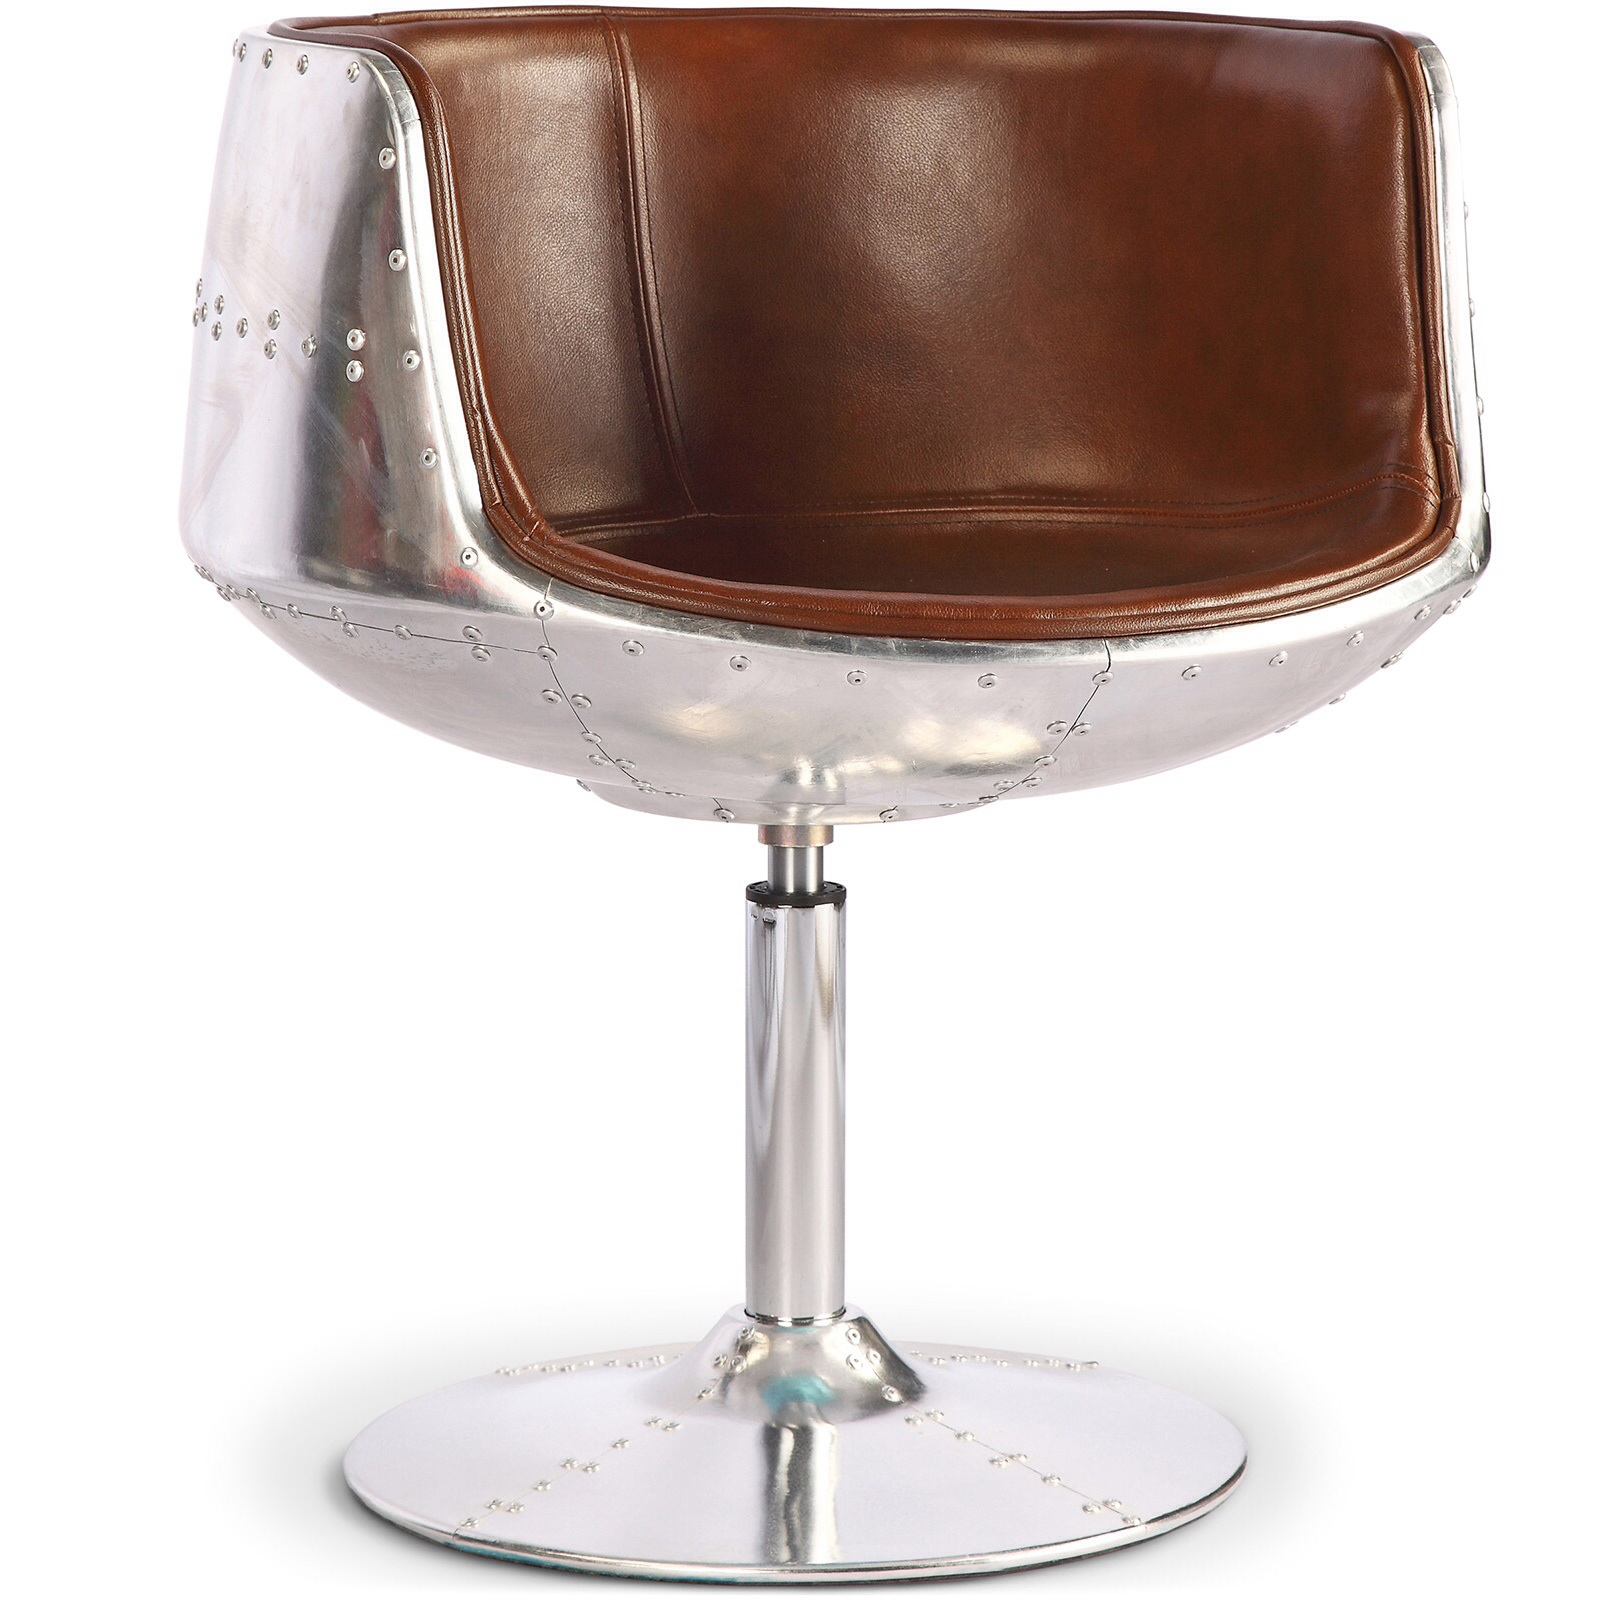 Aeronautical Brandy Glass Chair Brown Aged  Leather style